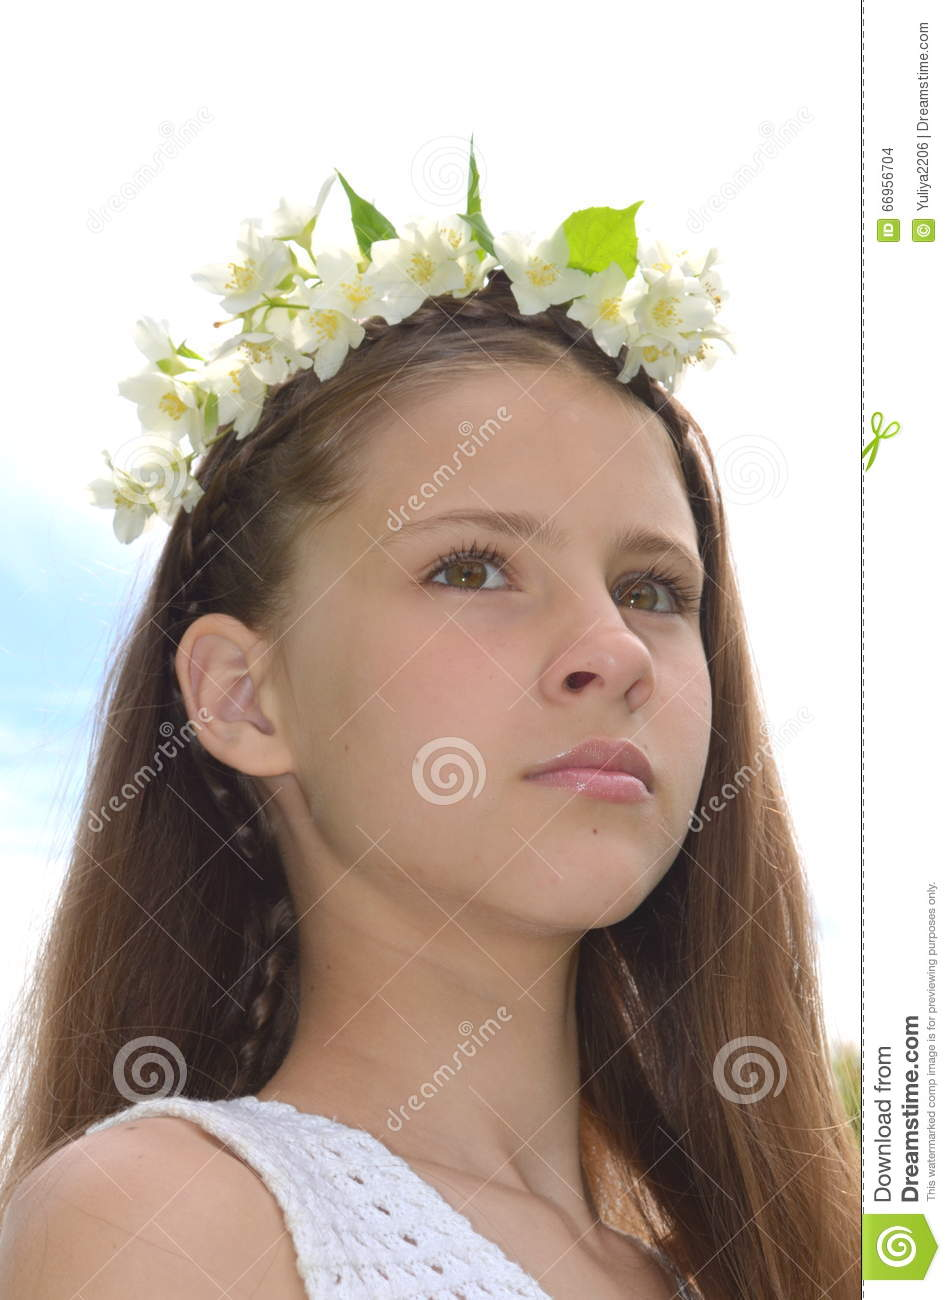 Girl with jasmine flowers stock photo image of braiding 66956704 download girl with jasmine flowers stock photo image of braiding 66956704 izmirmasajfo